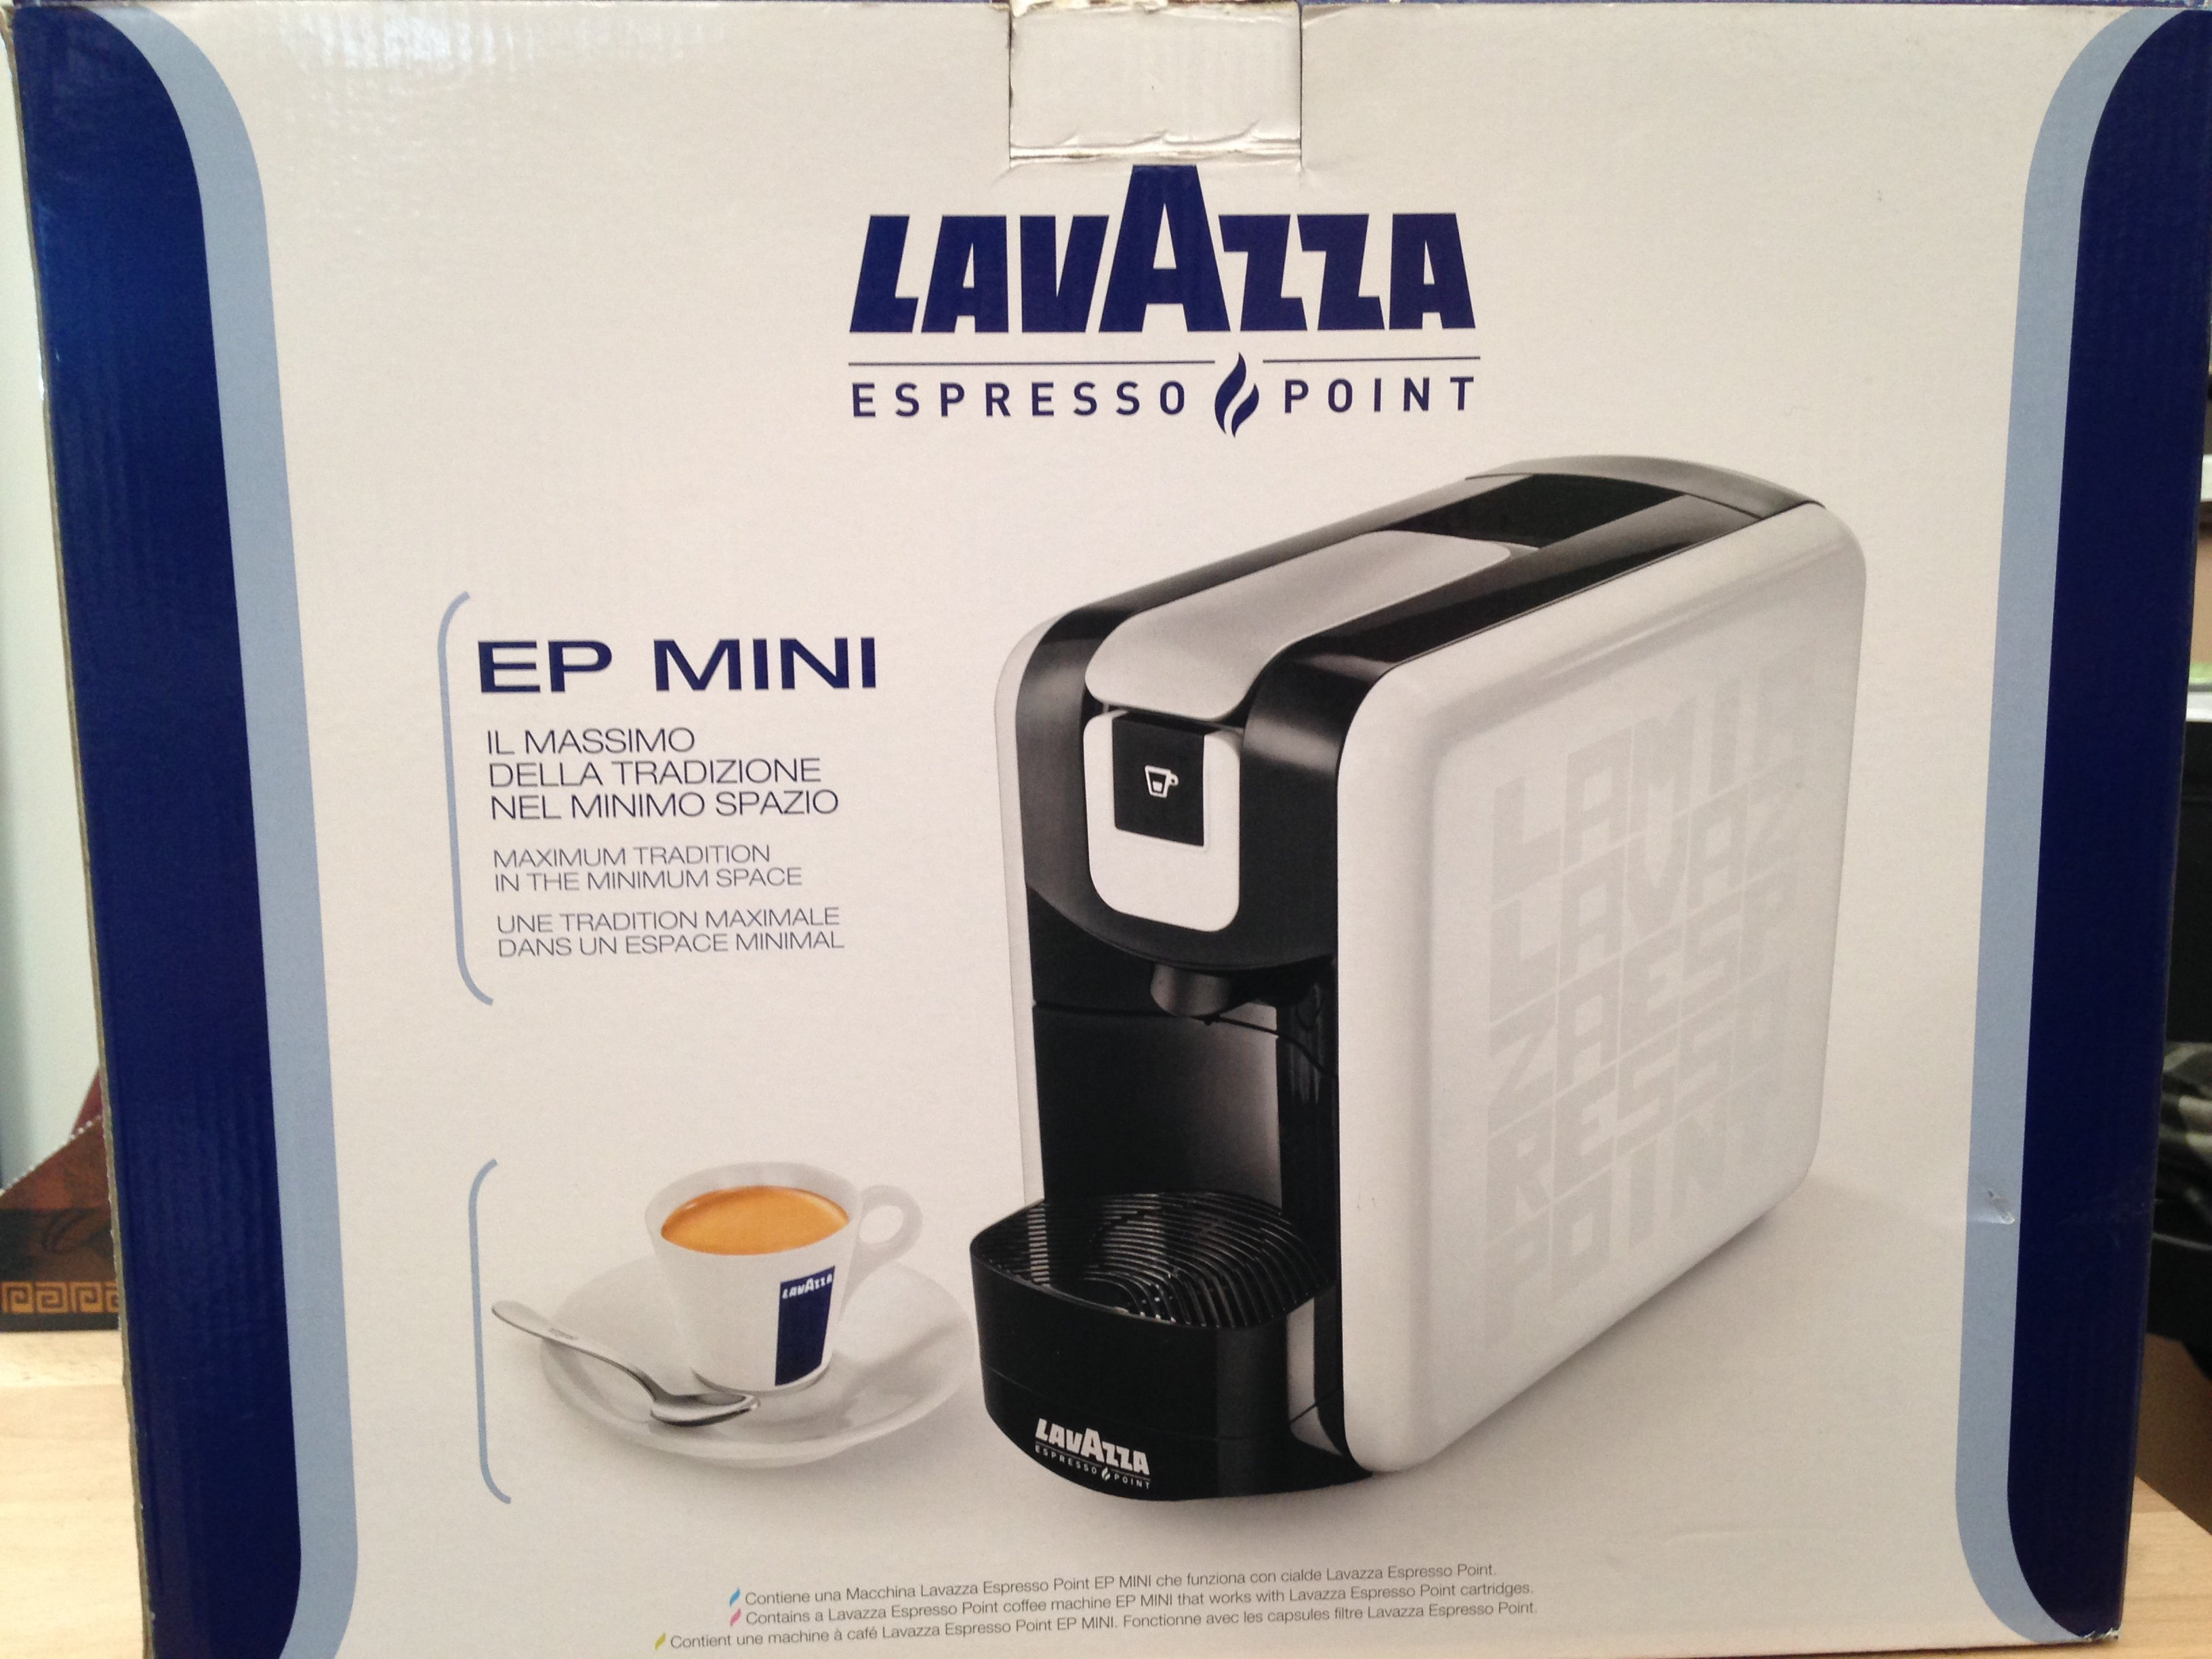 EP Mini Lavazza espresso point